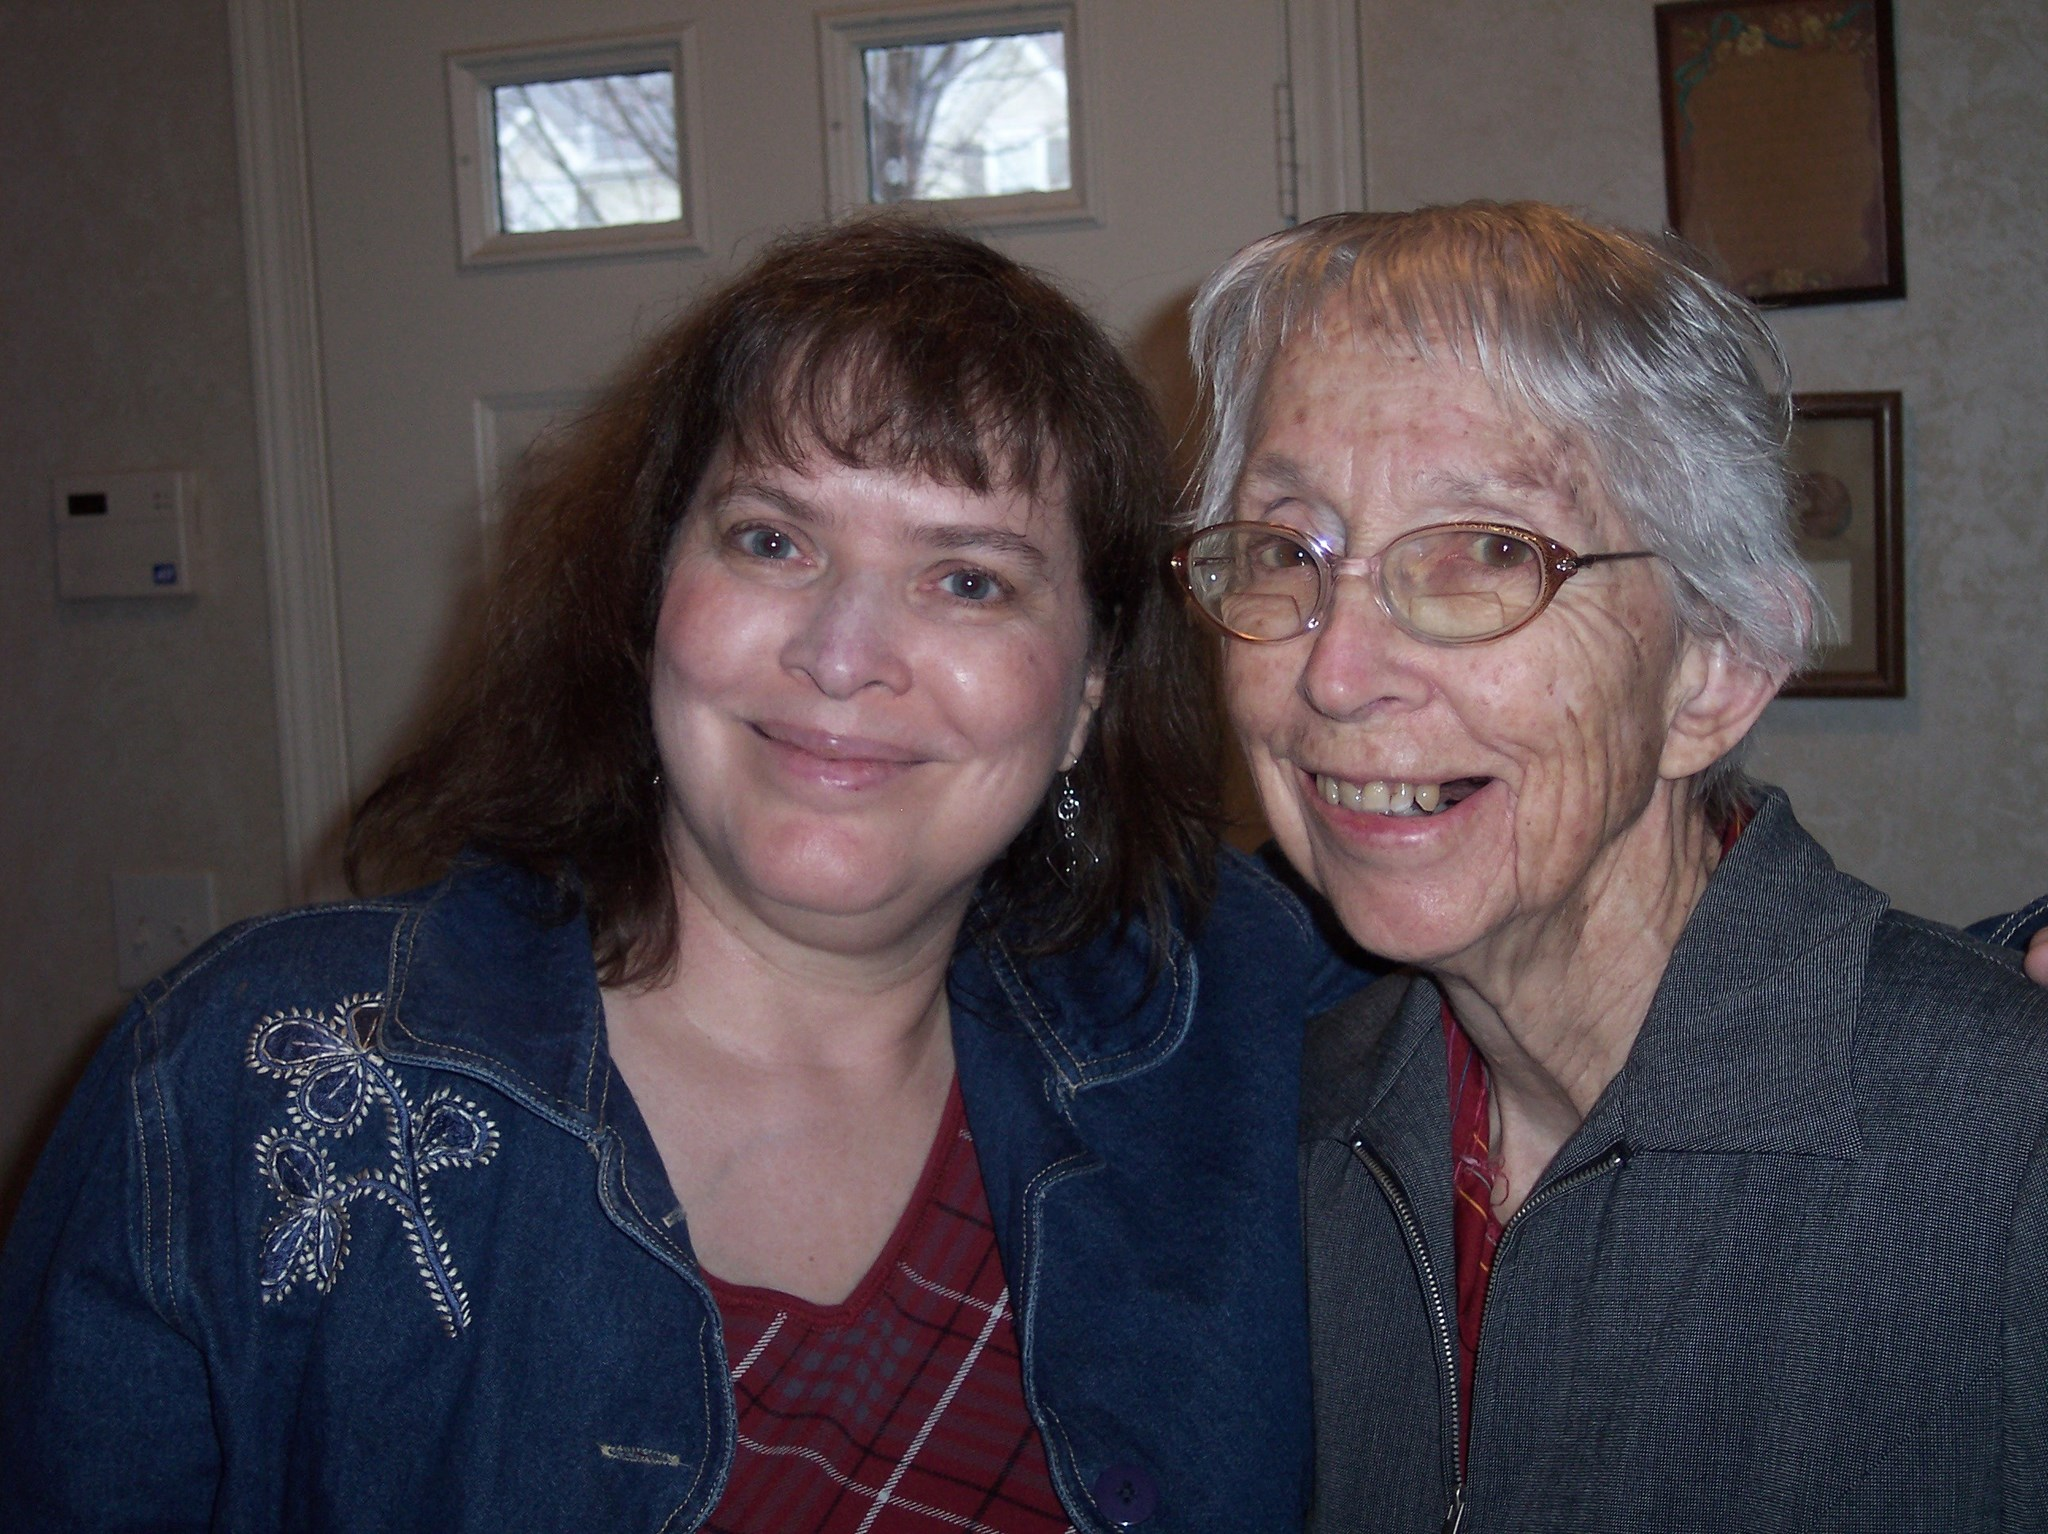 Sue Ford and Dorothy Uhlig April 2009 - last time we were together in person